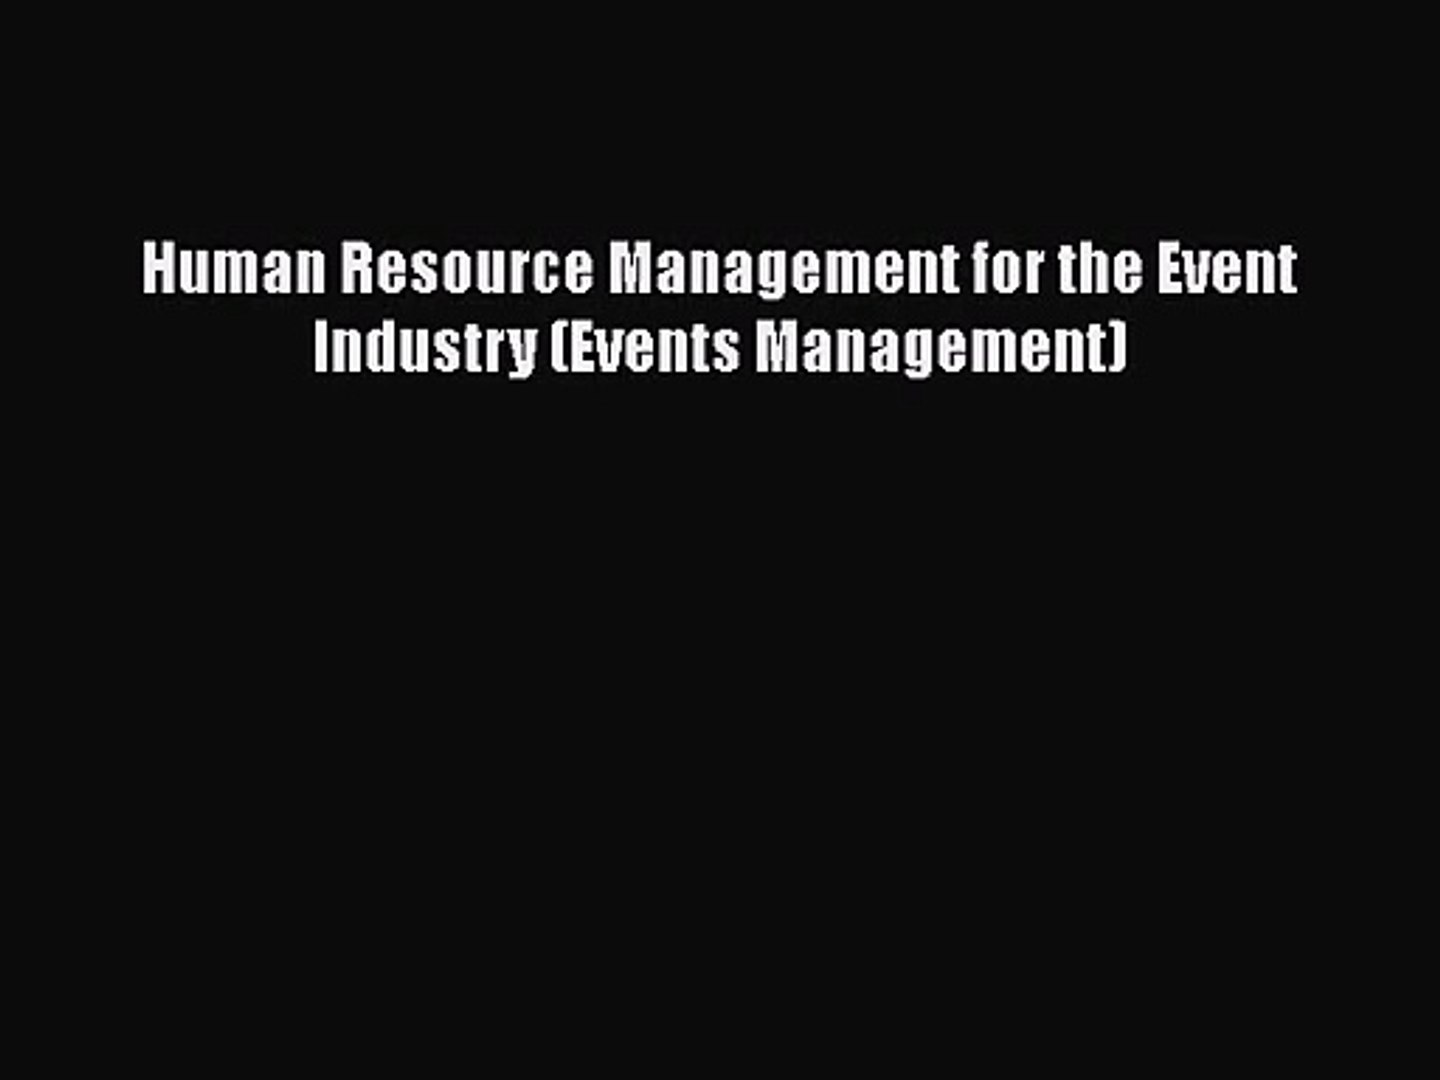 [PDF Download] Human Resource Management for the Event Industry (Events Management) [Download]